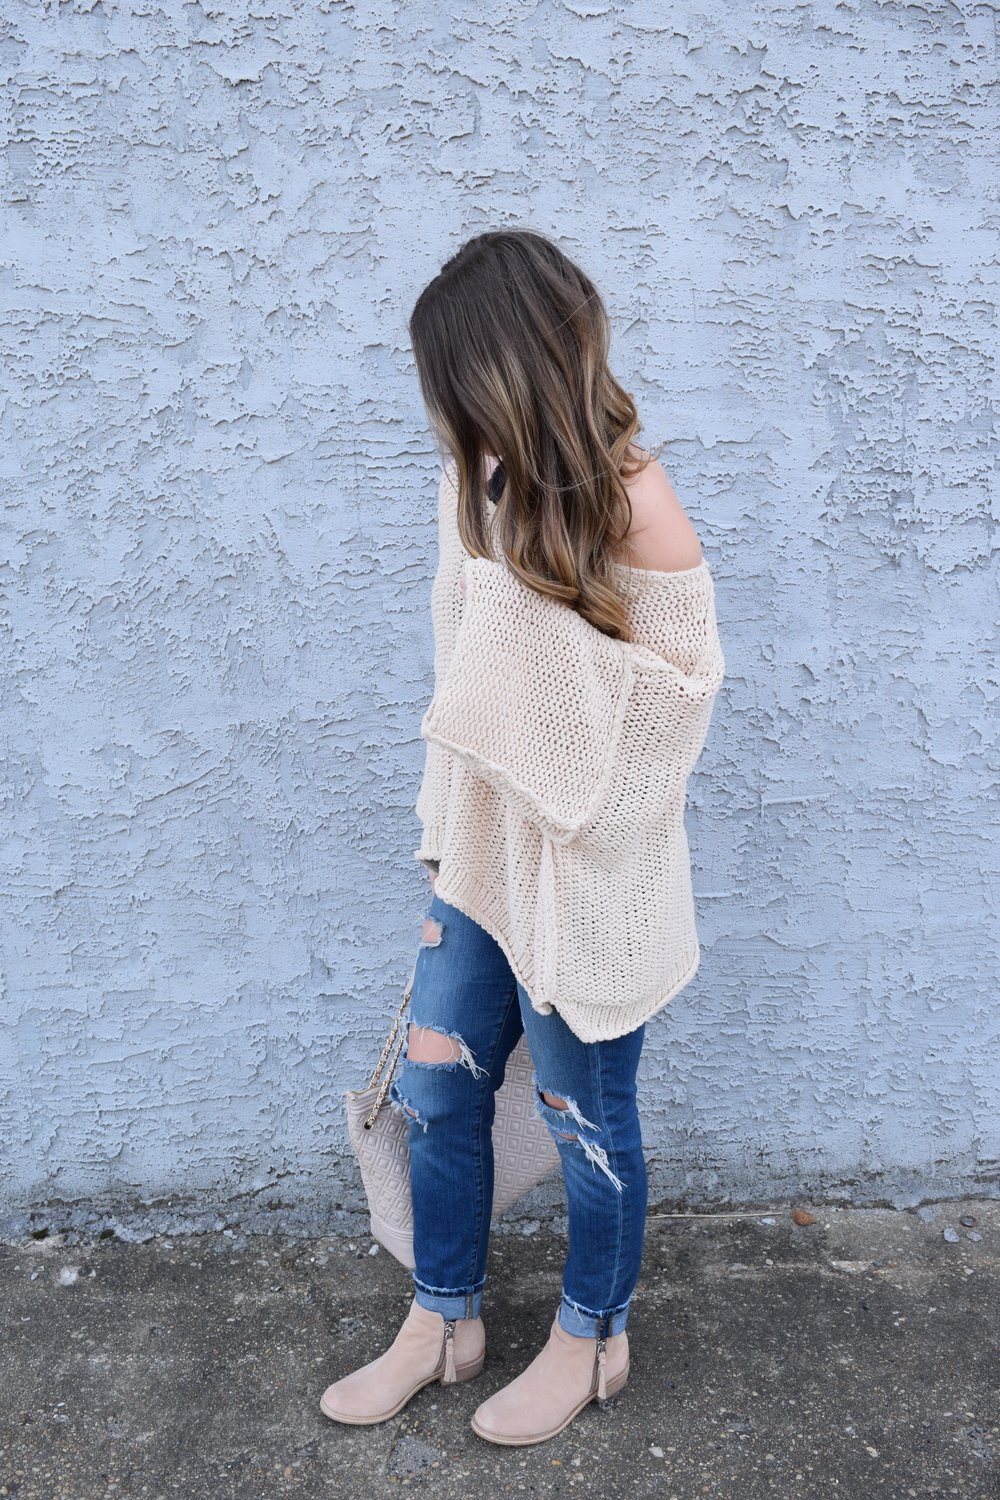 free people slouchy sweater + distressed denim + booties